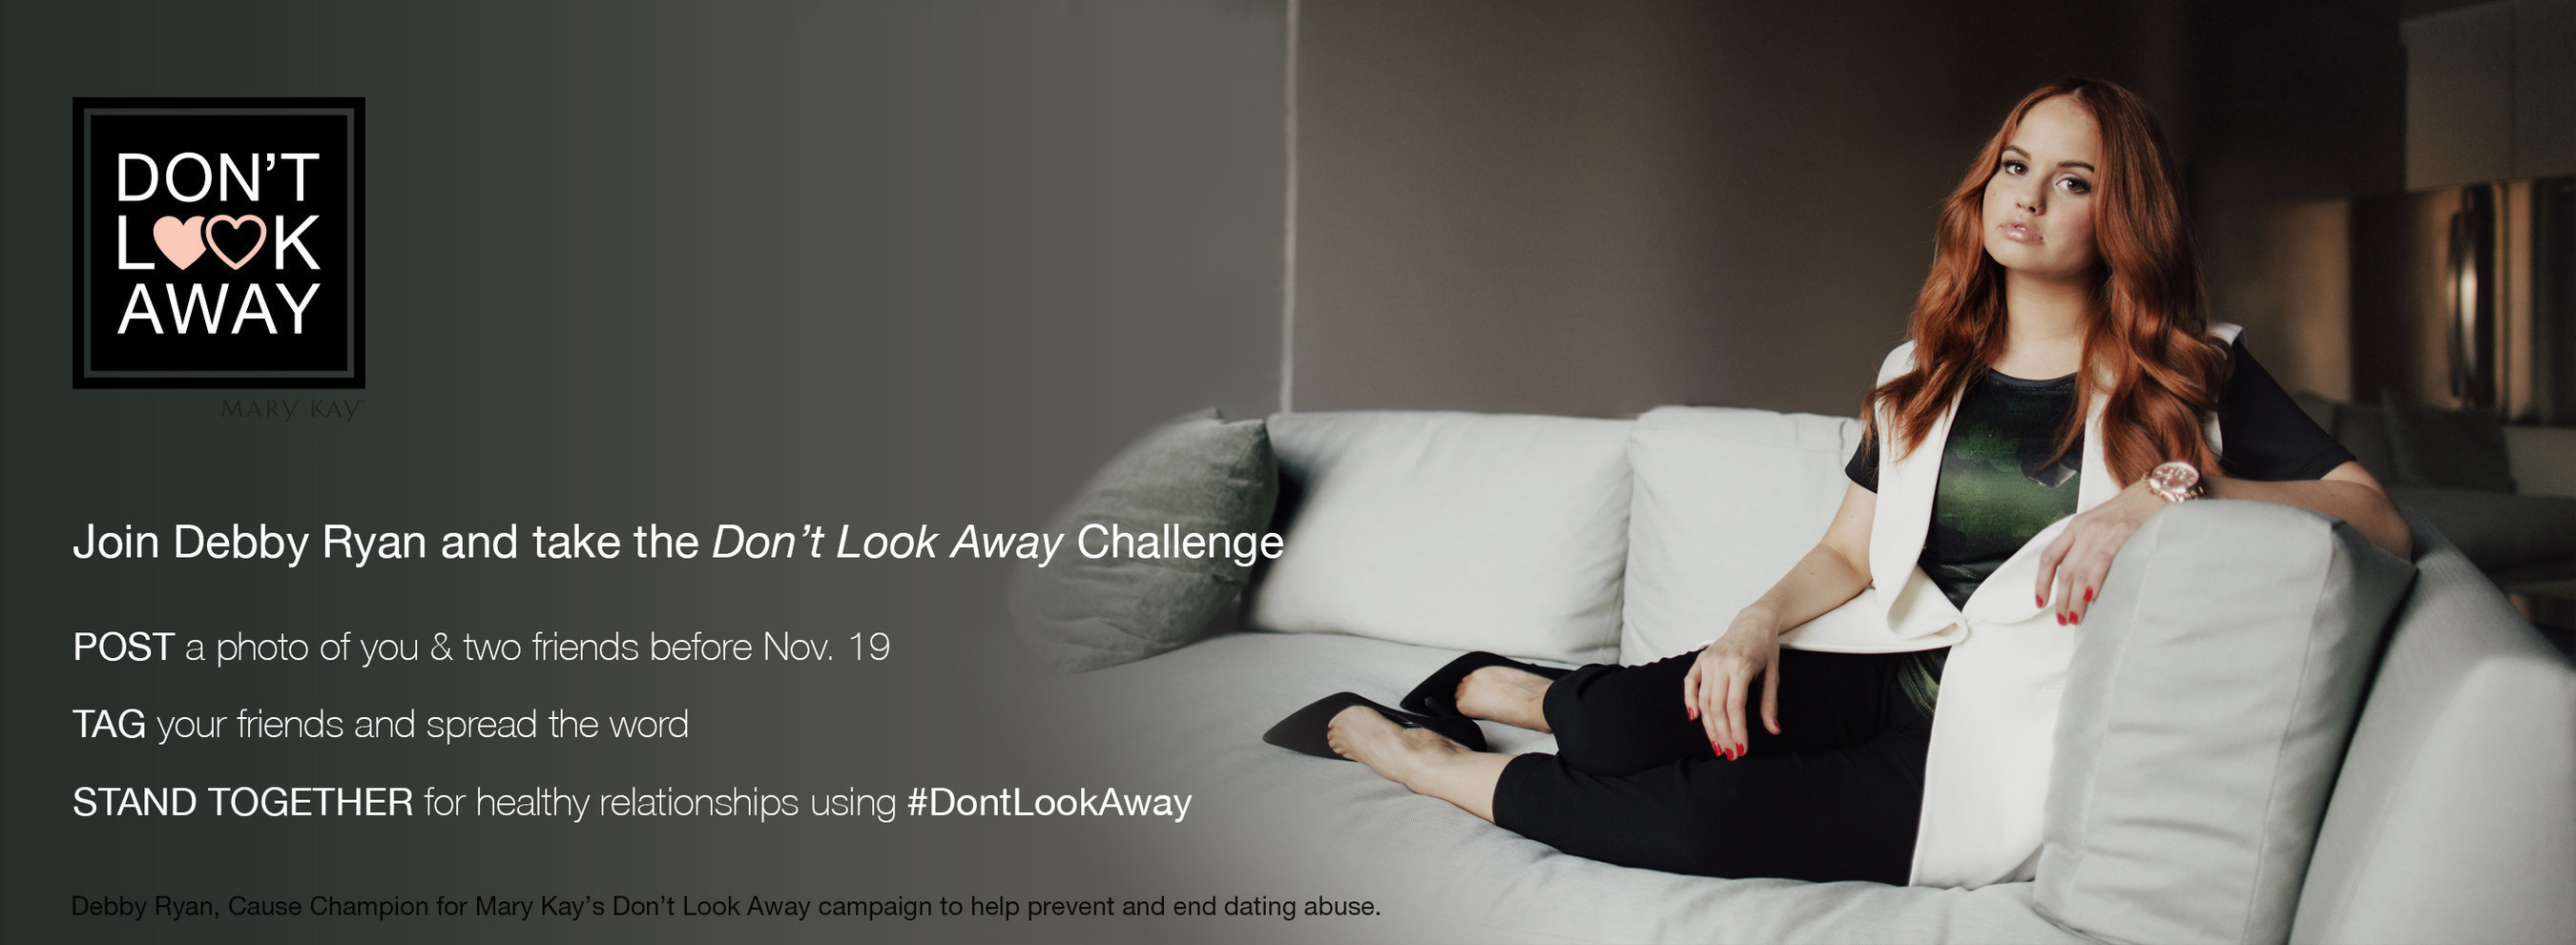 Mary Kay Cause Champion Debby Ryan Challenges Teens To Stand Together Against Abuse